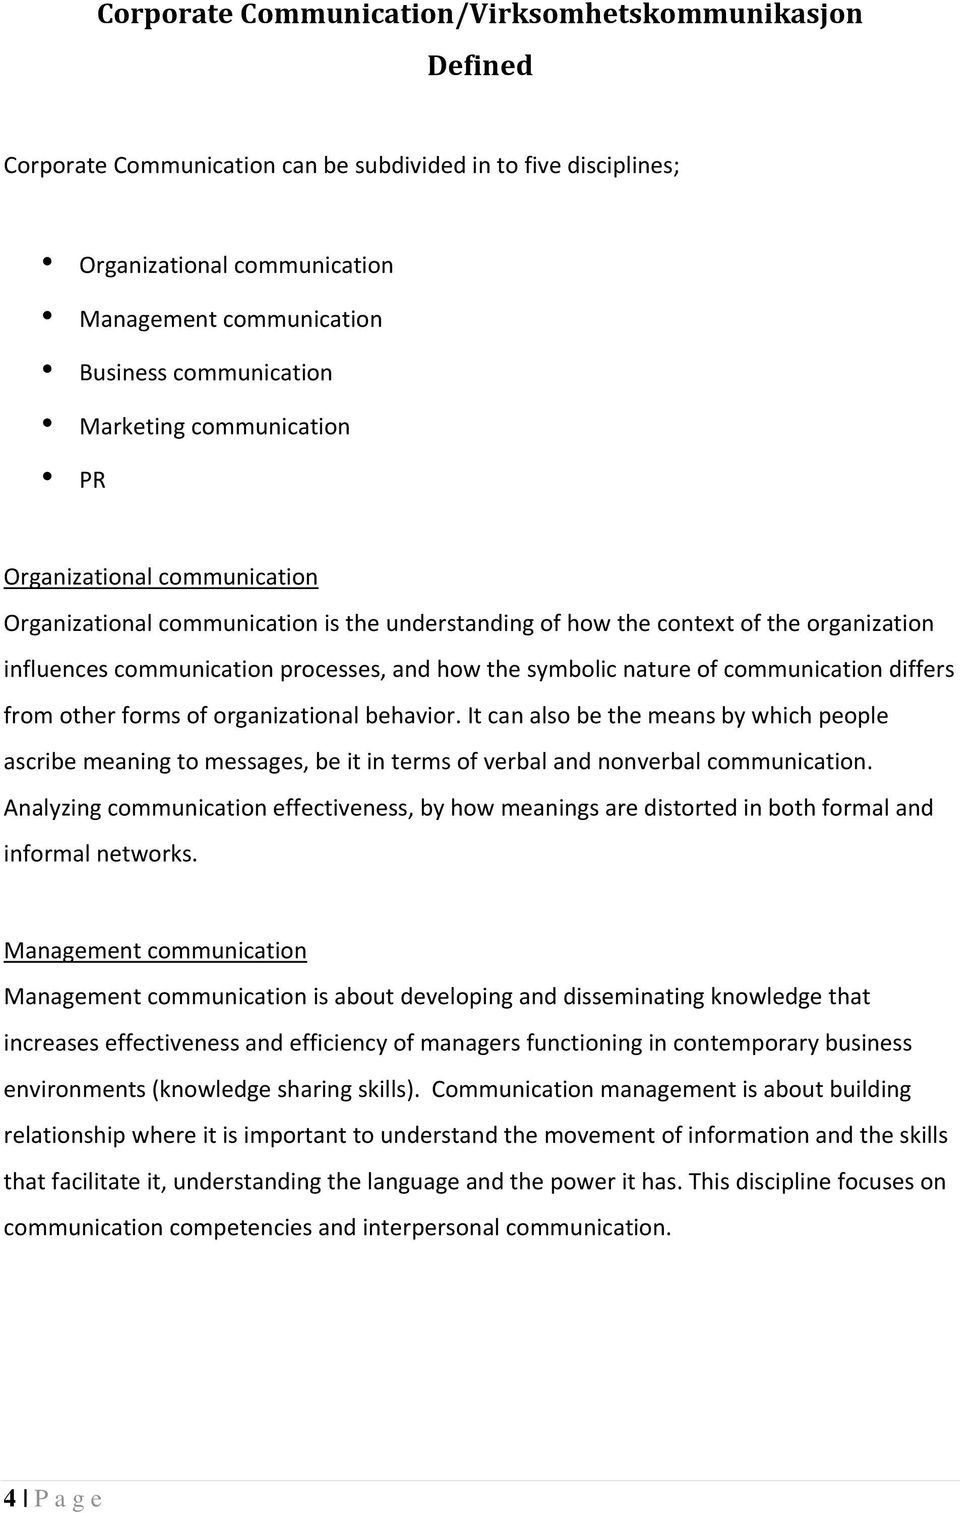 symbolic nature of communication differs from other forms of organizational behavior.